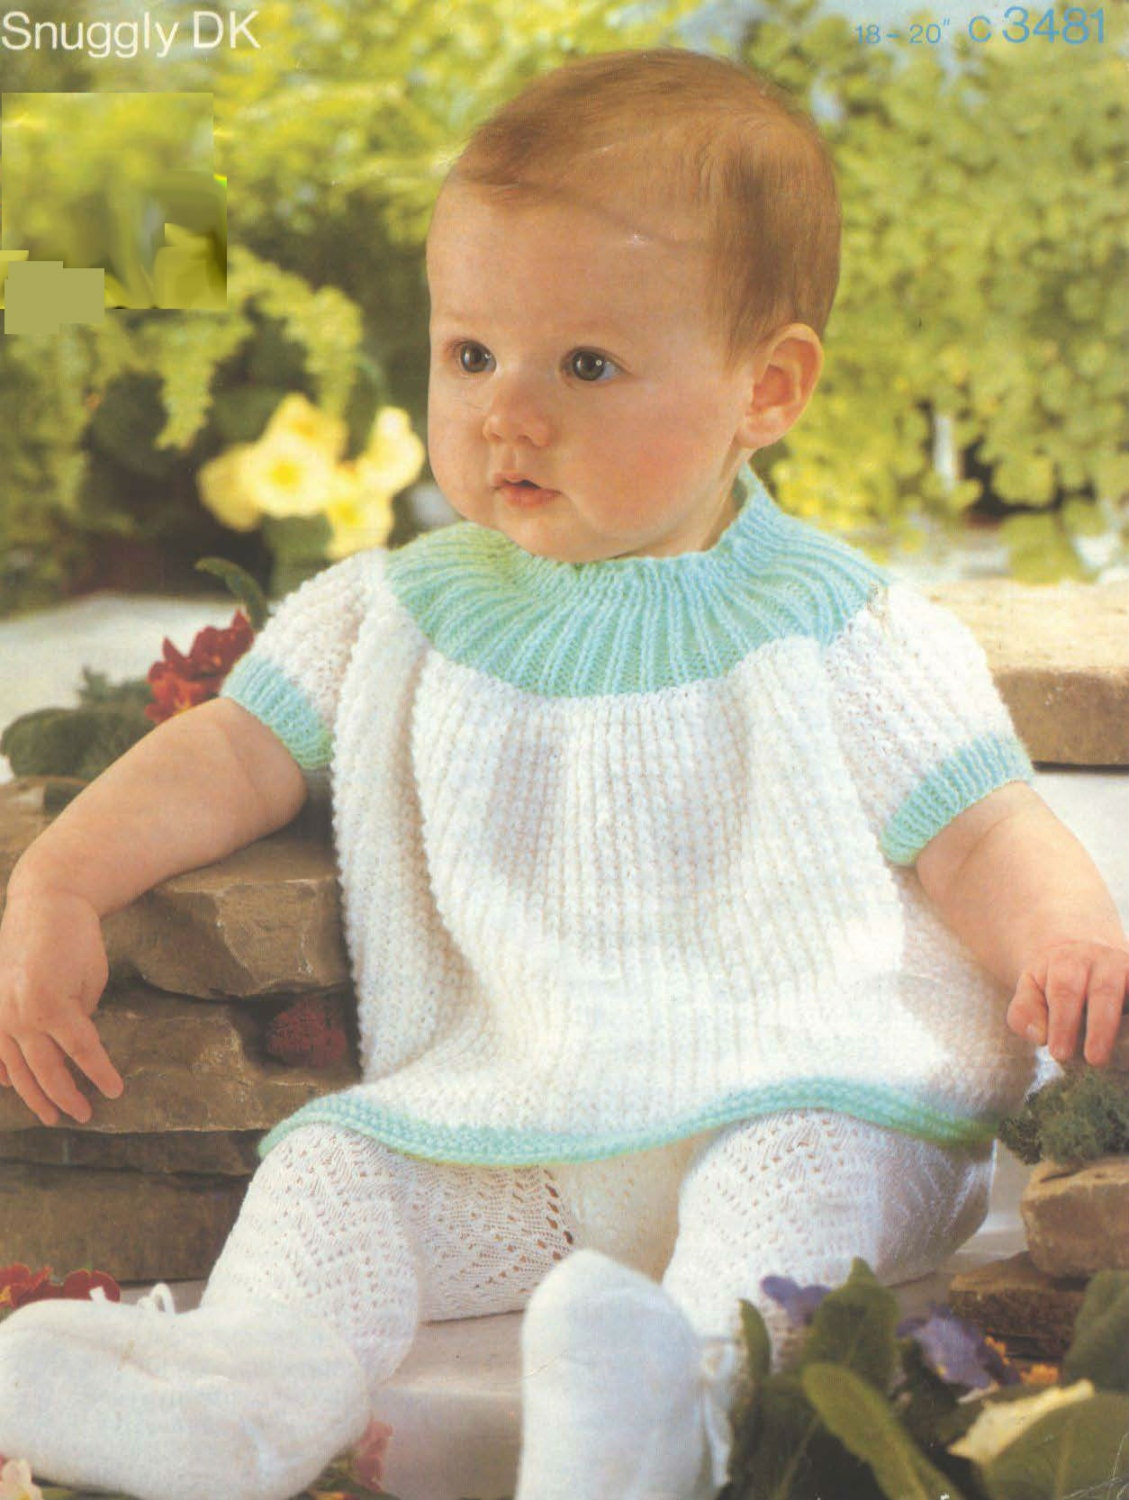 Free Knitting Pattern For Baby Angel Top : Knit Baby Angel Top Vintage Knitting Pattern by ...